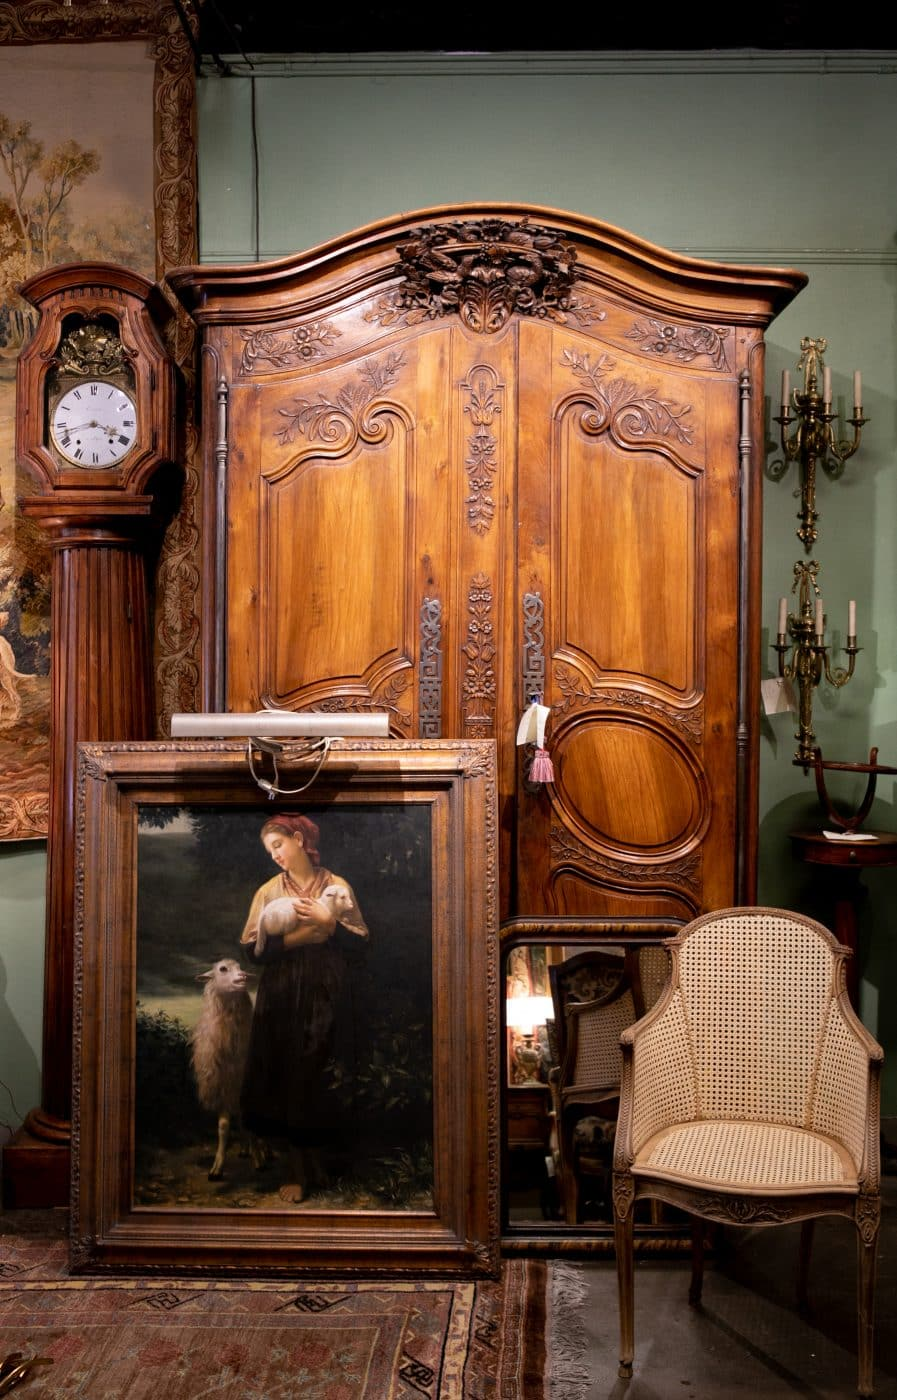 18th-century wedding armoire from Provence